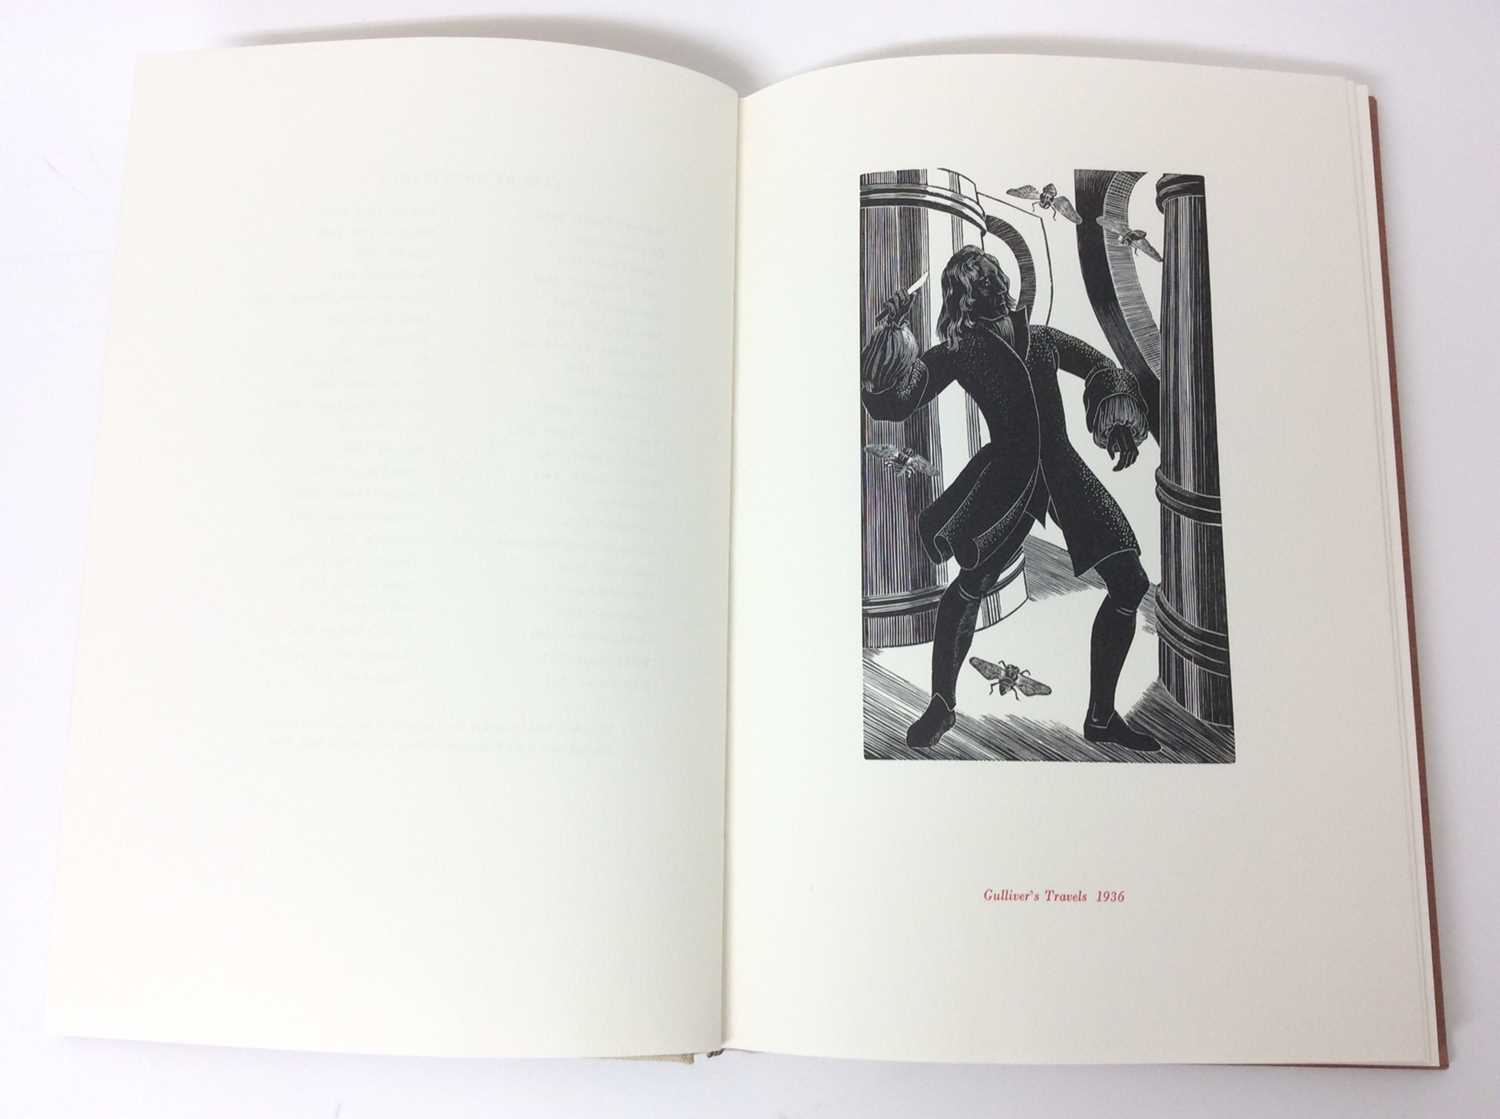 Mary Skempton - The Wood Engravings of Mary Skempton limited edition of 150 - Image 4 of 7